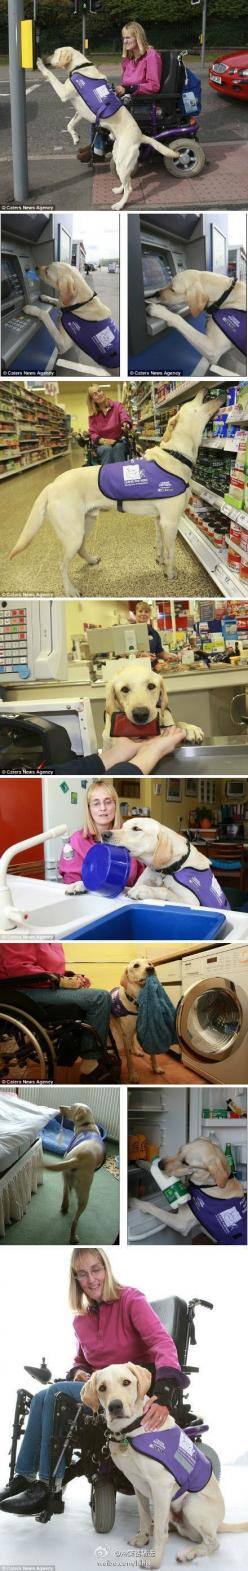 This dog rocks!: Animals, Awesome Dog, Amazing Dogs, Pet, Service Dogs, Friend